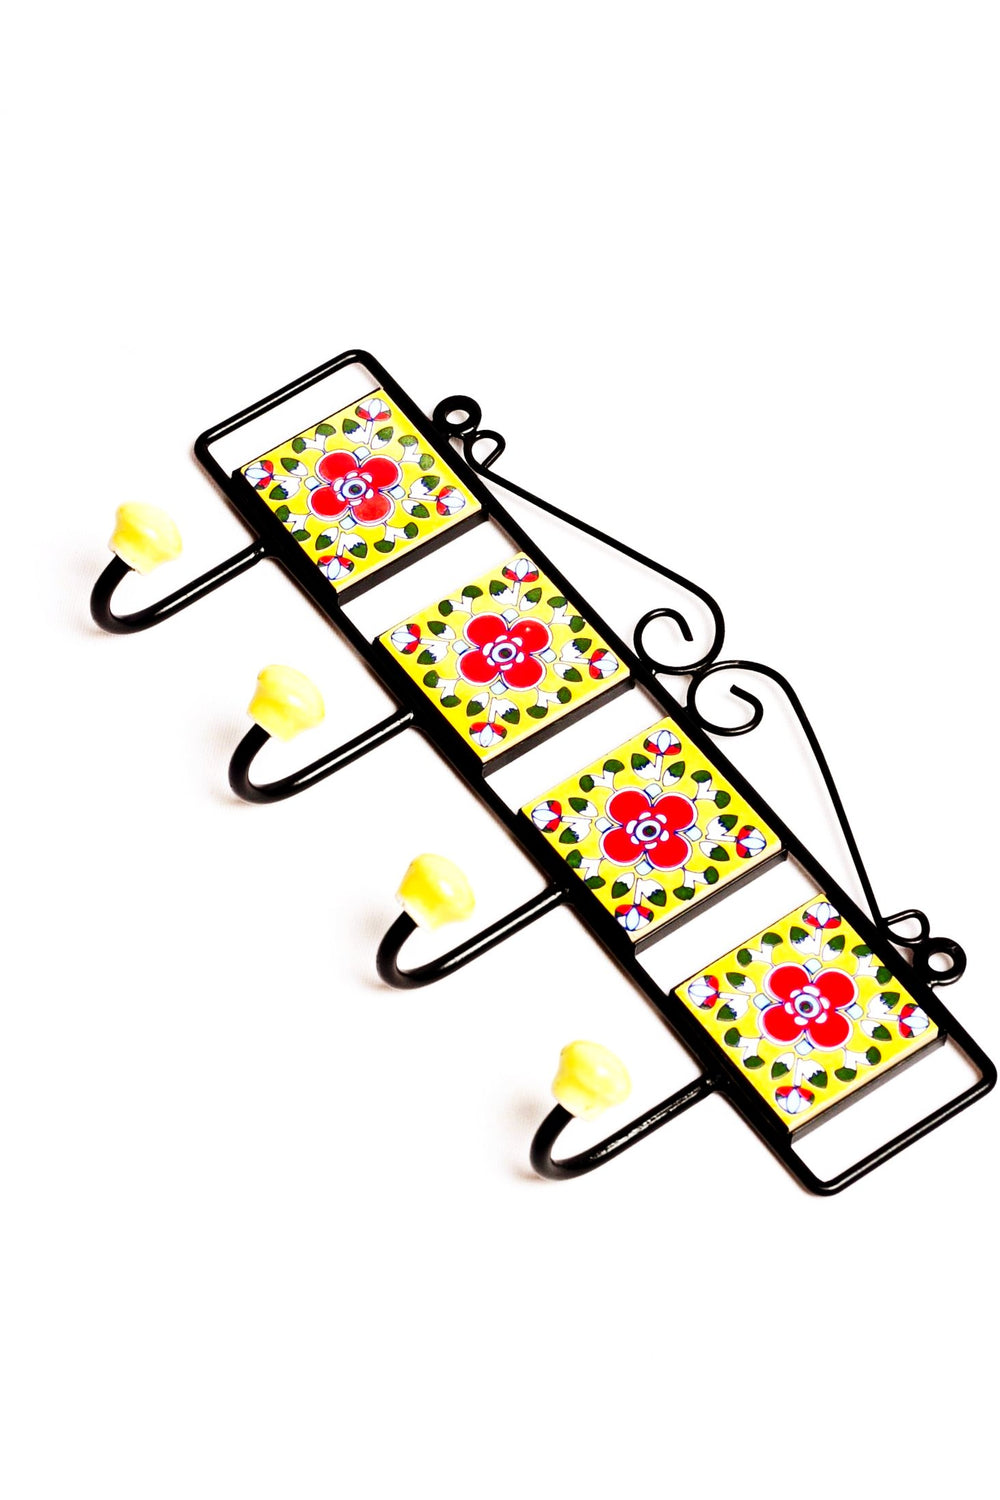 Metal and three square ceramic tile with a 3 peg wall hook, yellow with red and white floral motif